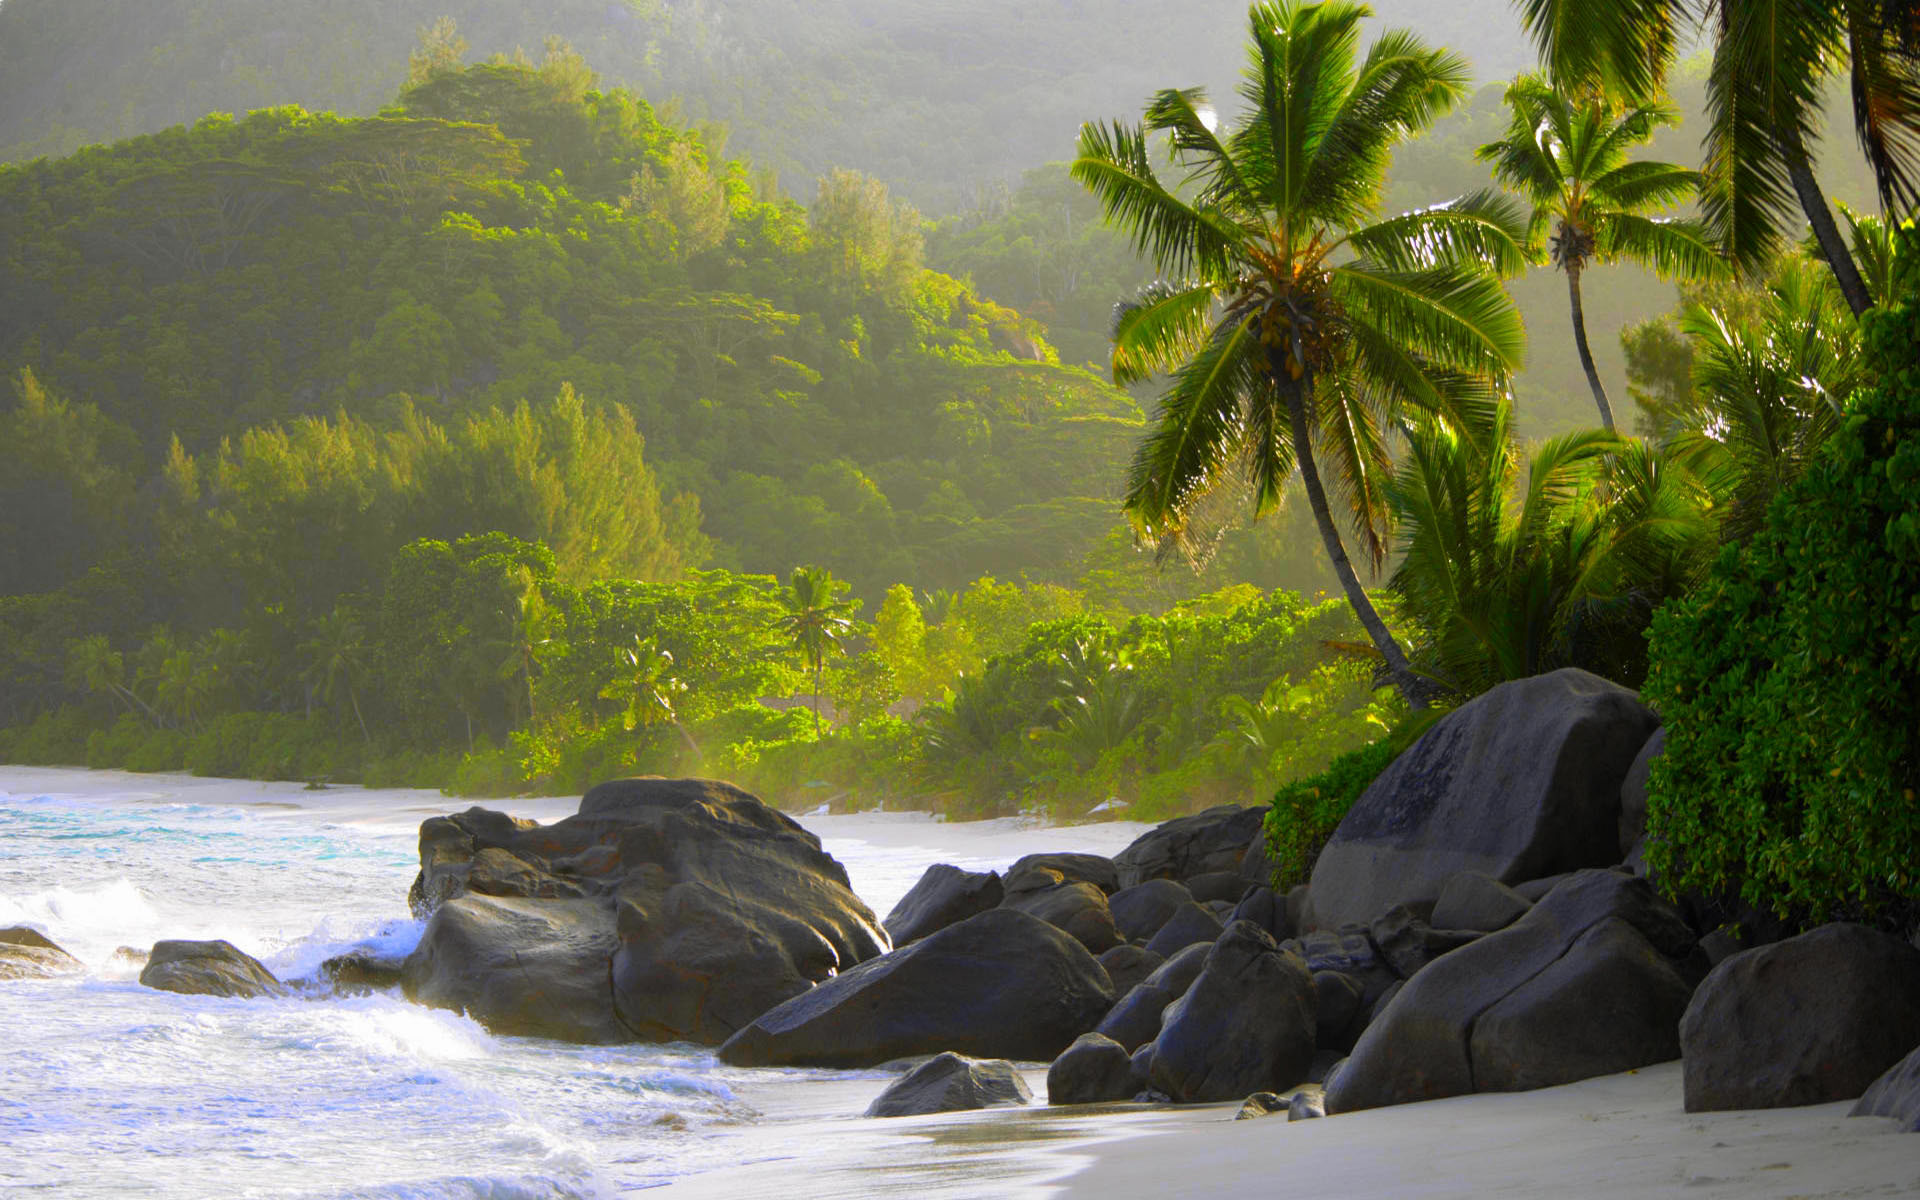 Rocks and palm trees along shore, Anse Intendance, Mahe´, Seychelles